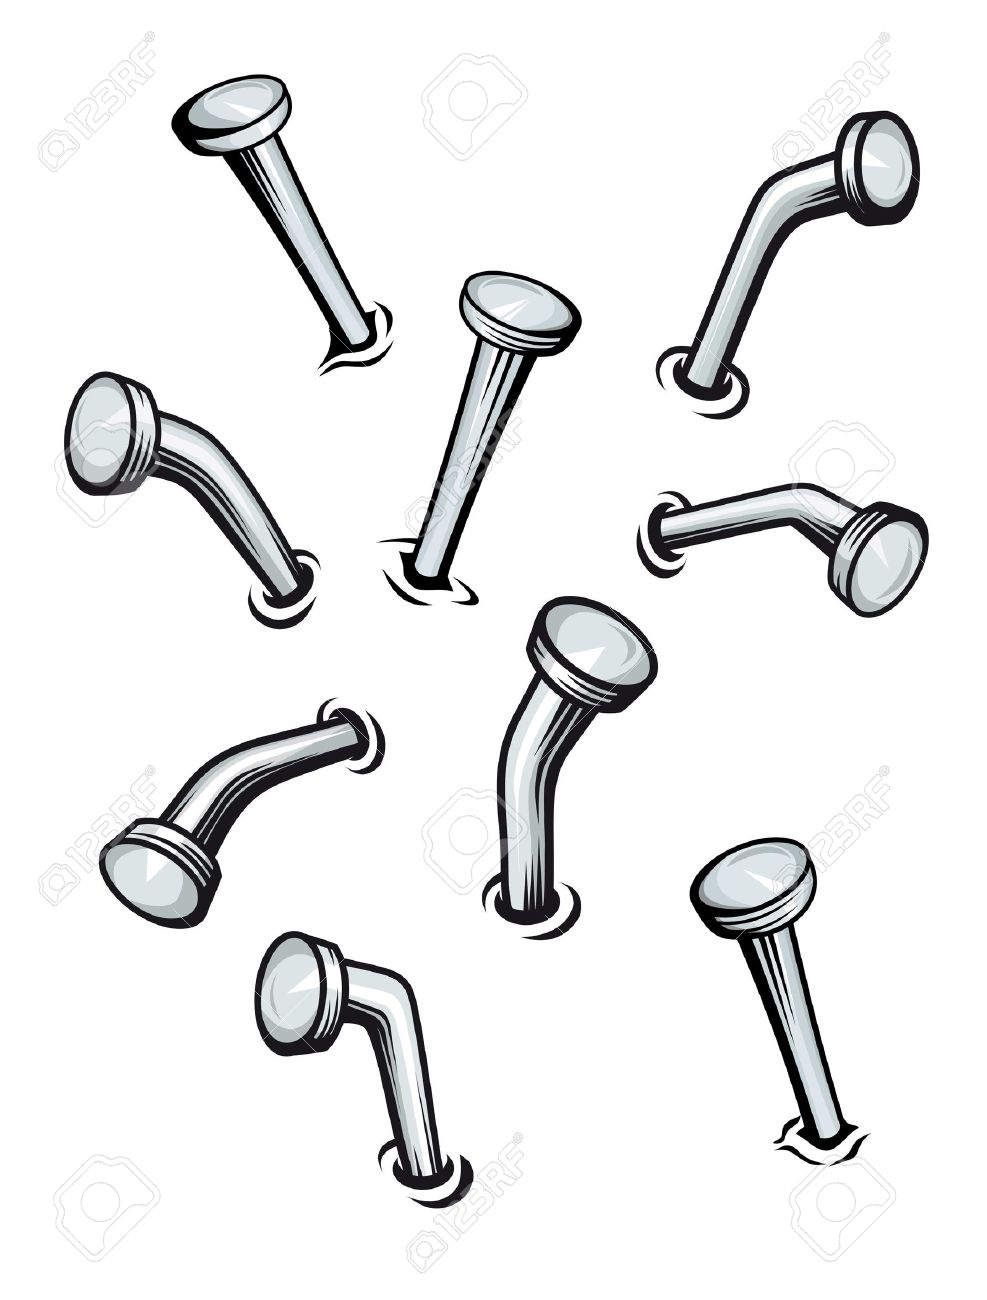 Set of nails on wall in cartoon style